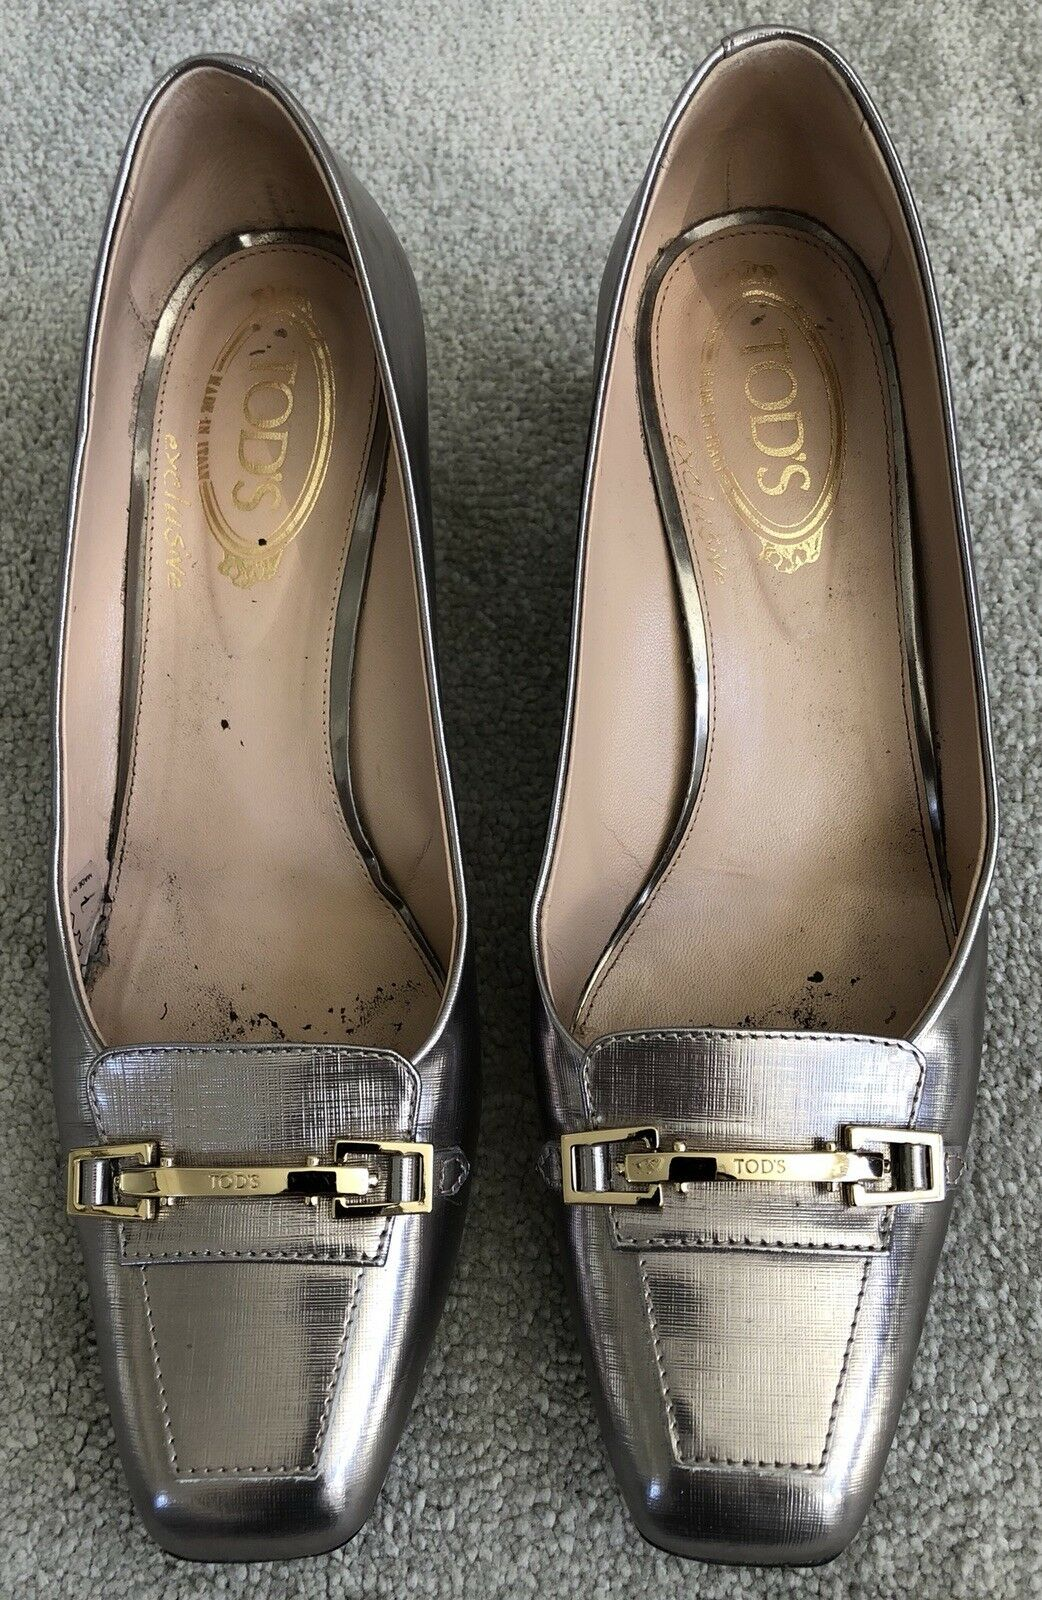 TODS Silber leather & Gold TODS etched bar medium high heel pumps schuhe 39   UK6  | Qualität und Quantität garantiert